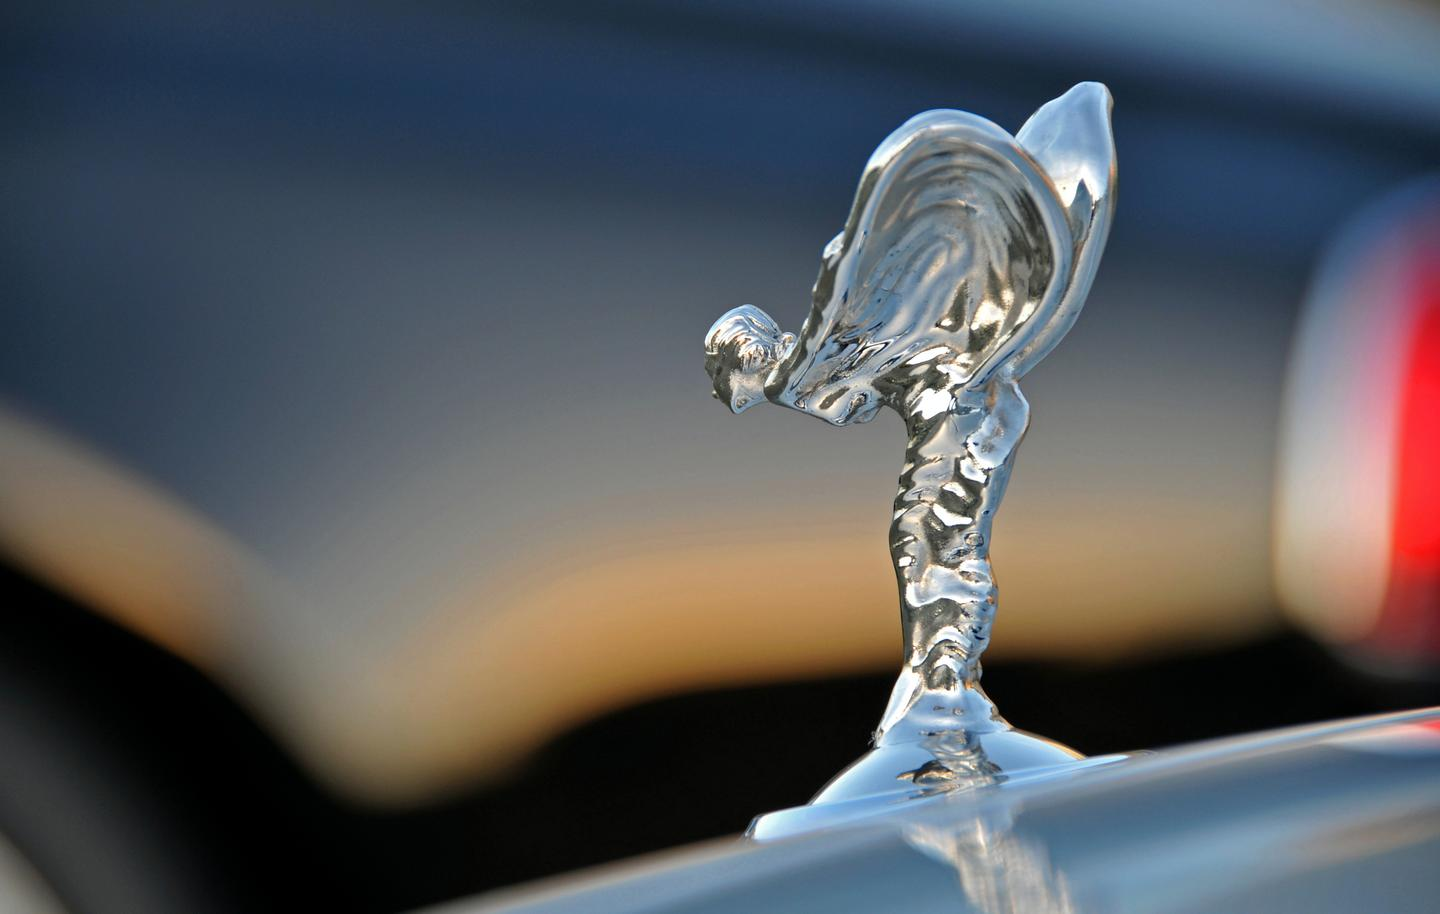 Rolls-Royce has announced the development of a new convertible for 2016